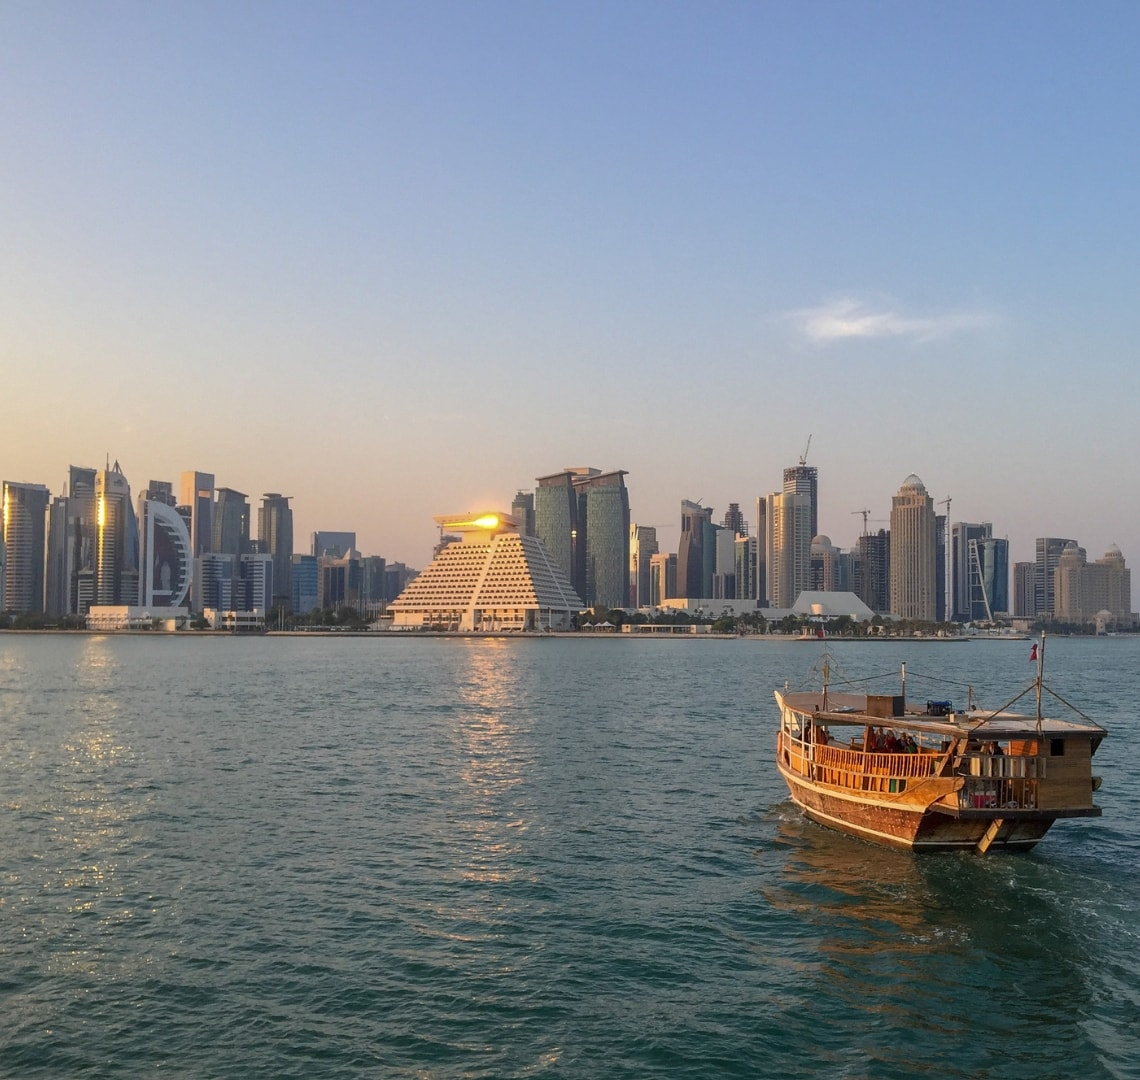 Normal Expat Christmas - View of the Doha skyline and a dhow boat from the sea